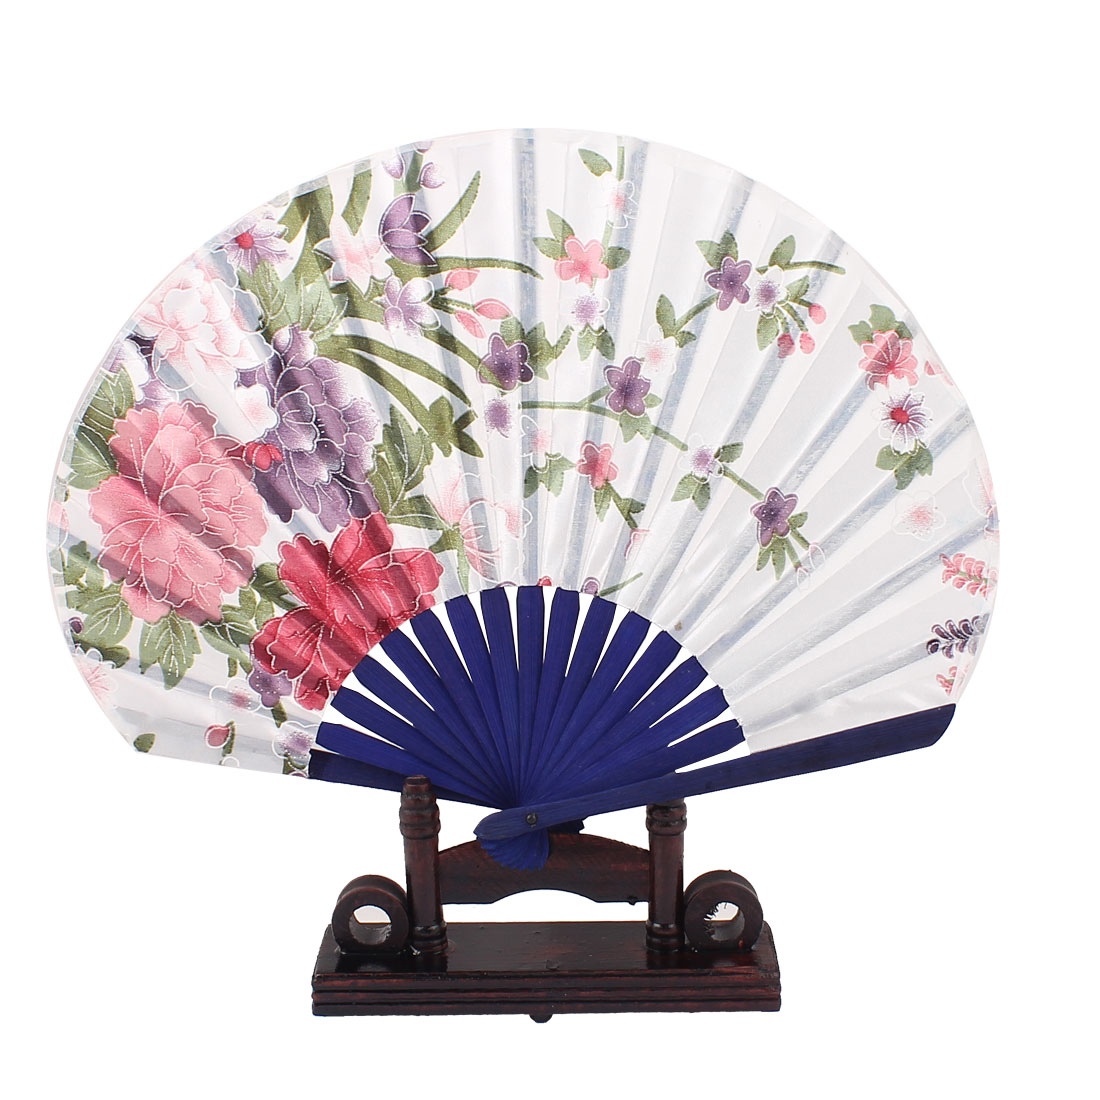 Chinese Painting Peony Floral Wood Folding Hand Fan White Blue w Display Holder